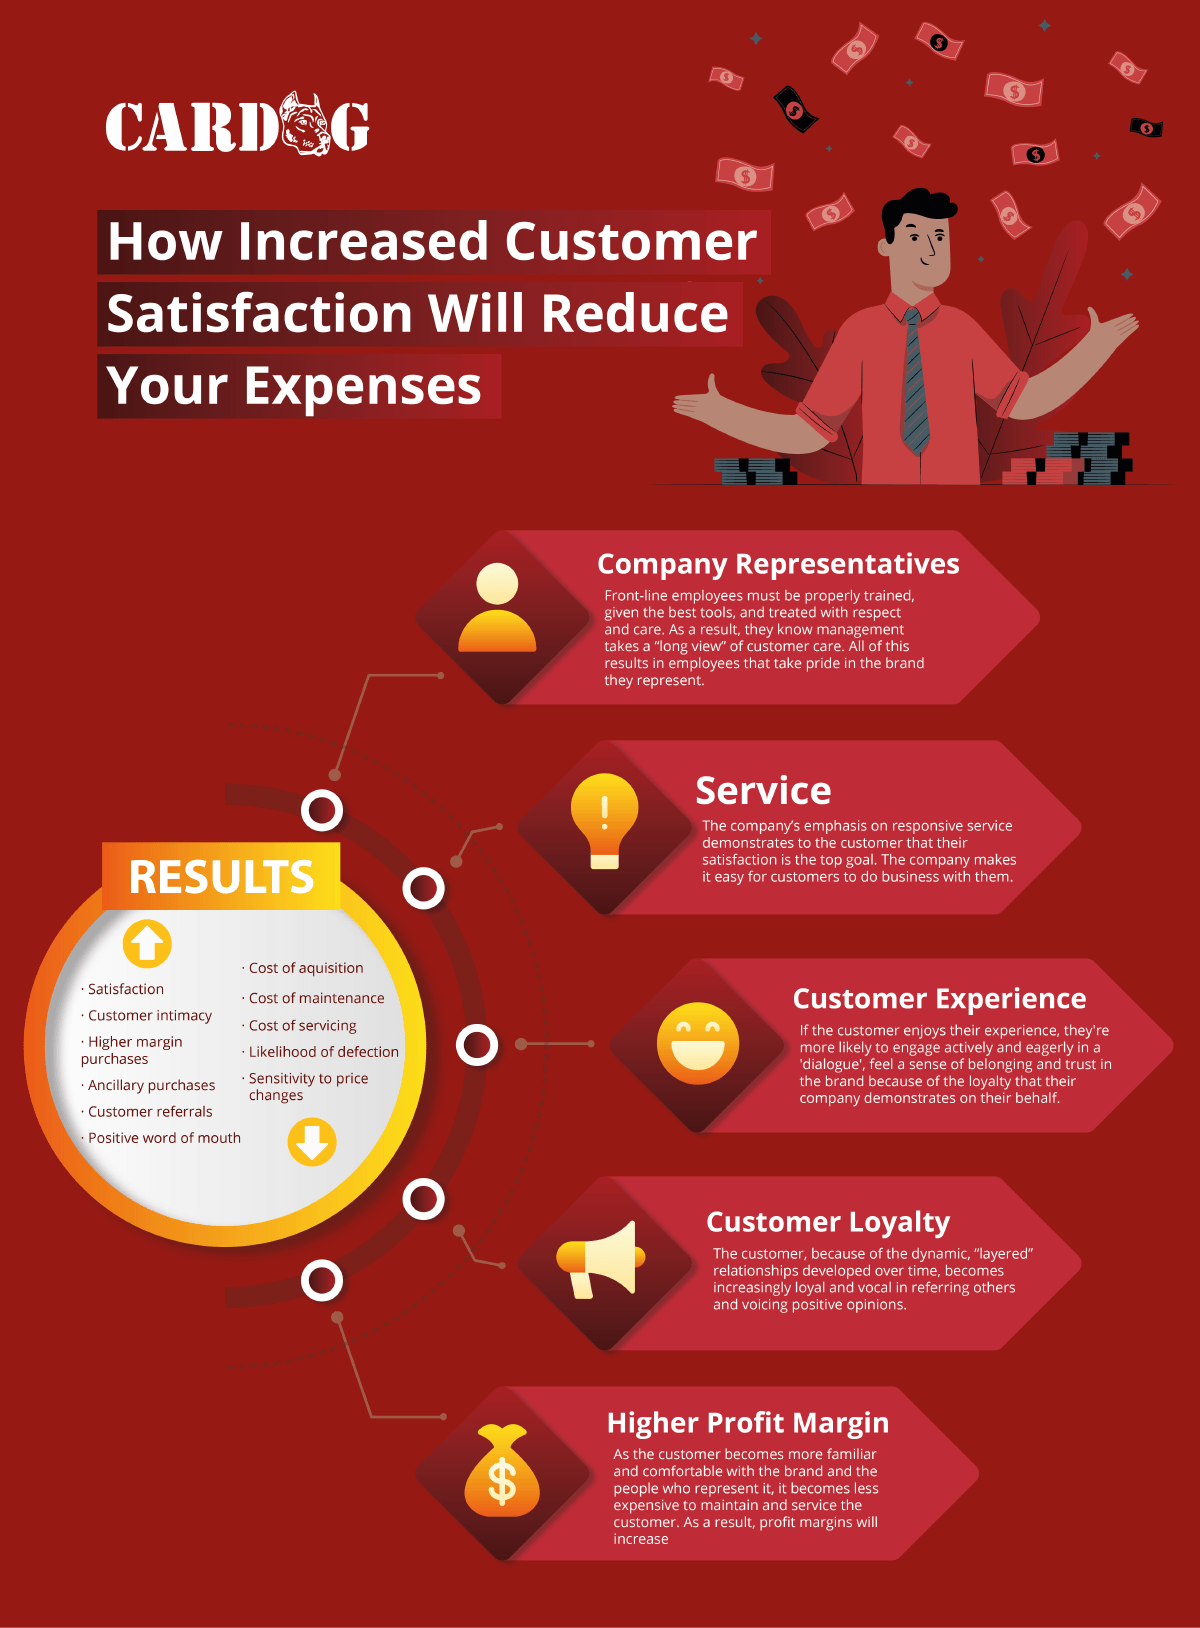 How Increased Customer Satisfaction Will Reduce Your Expenses